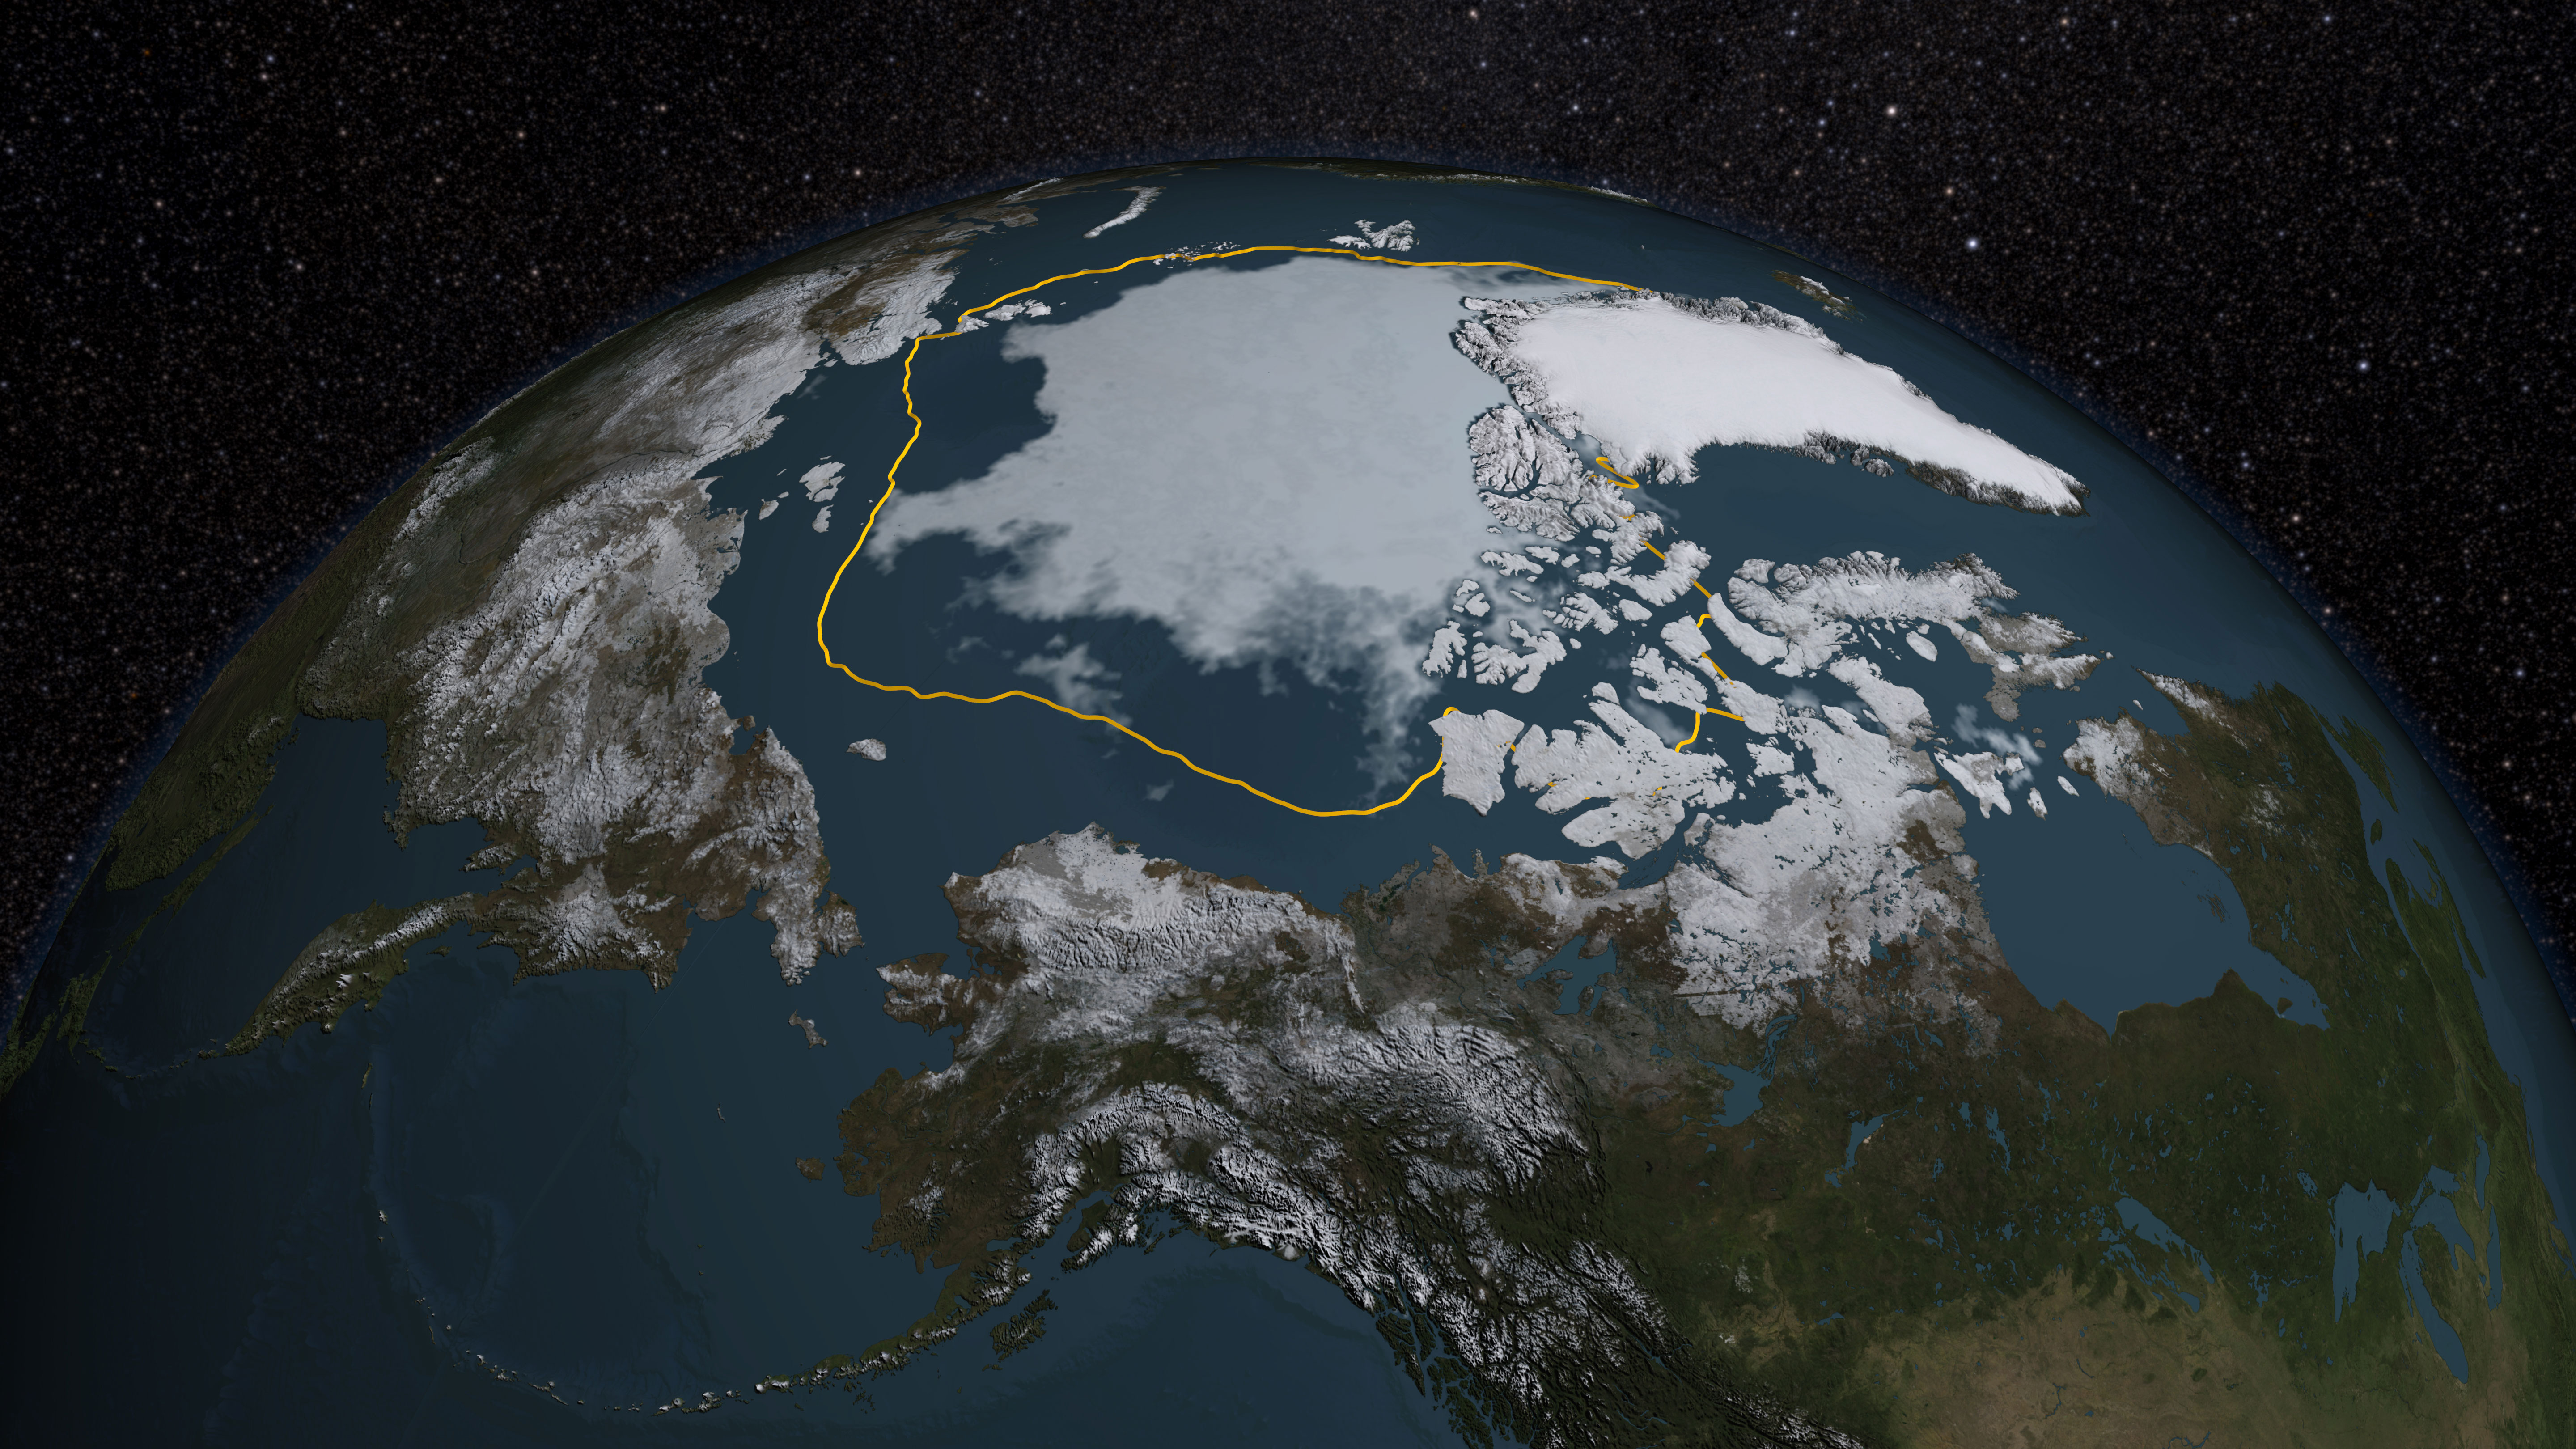 The 2015 Arctic sea ice summertime minimum is 699,000 square miles below the 1981-2010 average, shown here as a gold line. Credit: NASA/Goddard Scientific Visualization Studio